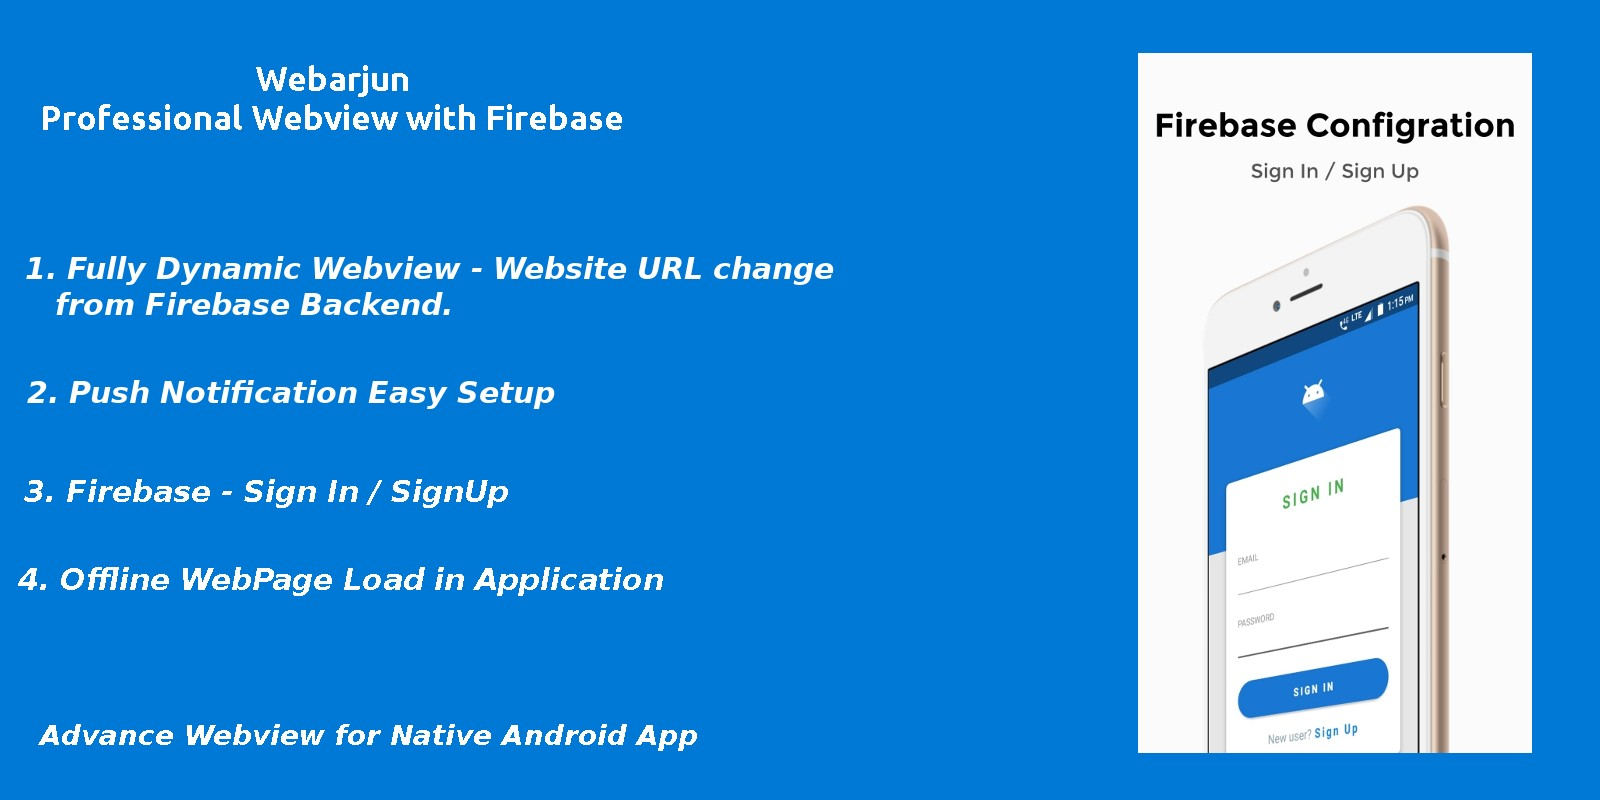 Webarjun - Android Webview App With Firebase Backe